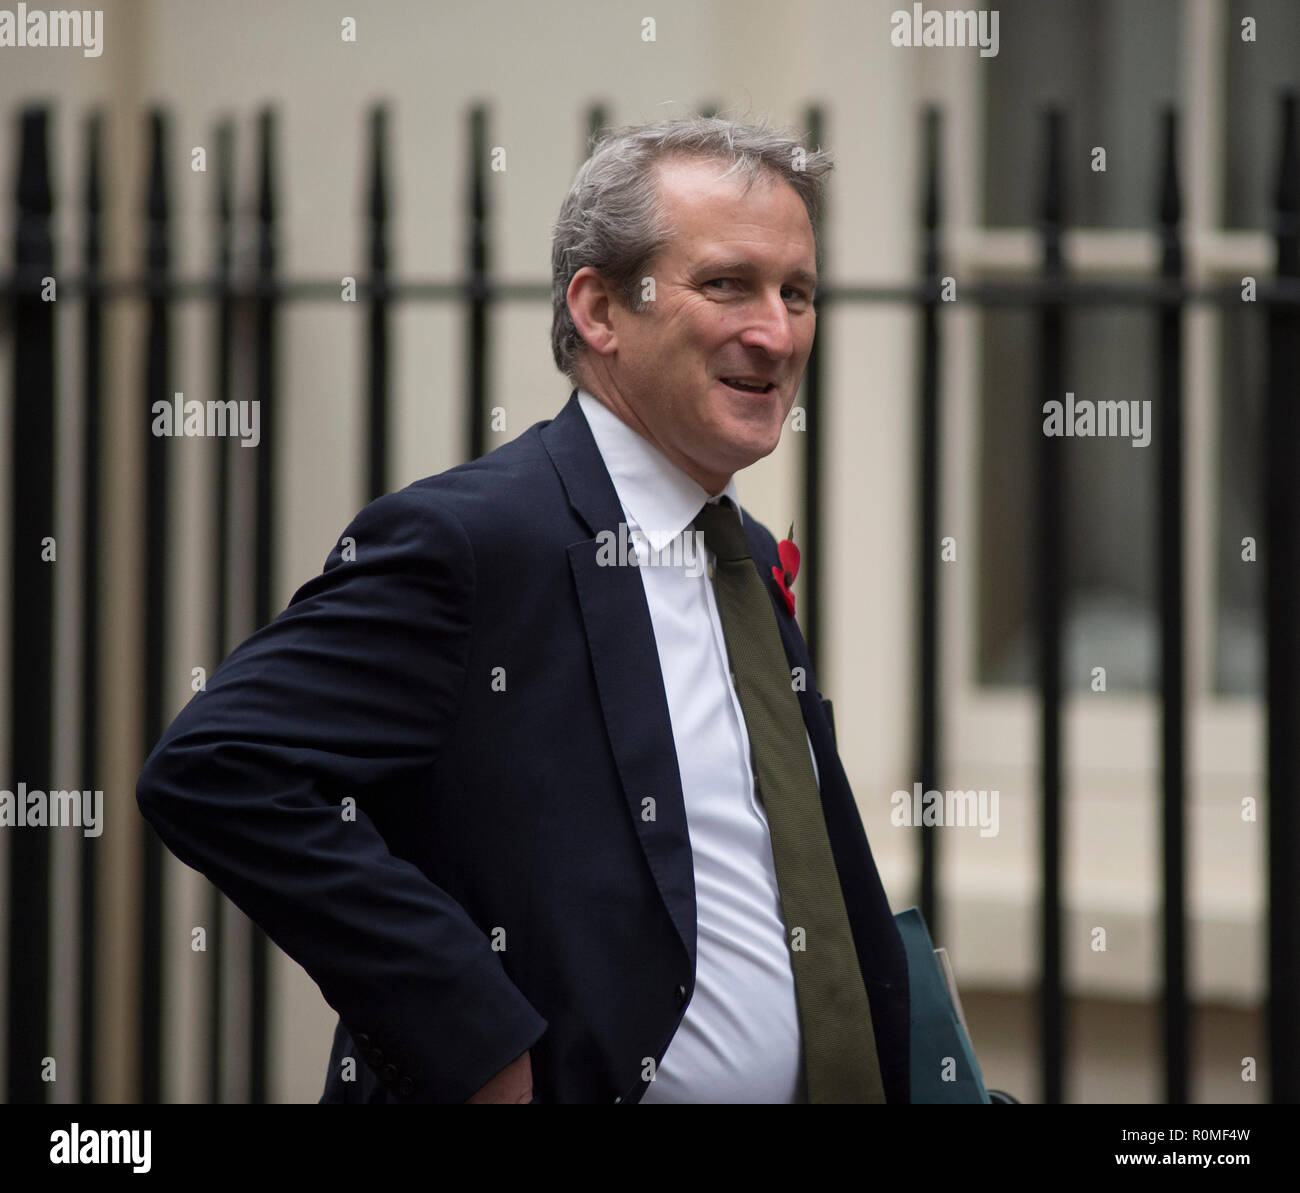 Downing Street, London, UK. 6 November 2018. Damian Hinds, Secretary of State for Education, arrives in Downing Street for weekly cabinet meeting. Credit: Malcolm Park/Alamy Live News. - Stock Image